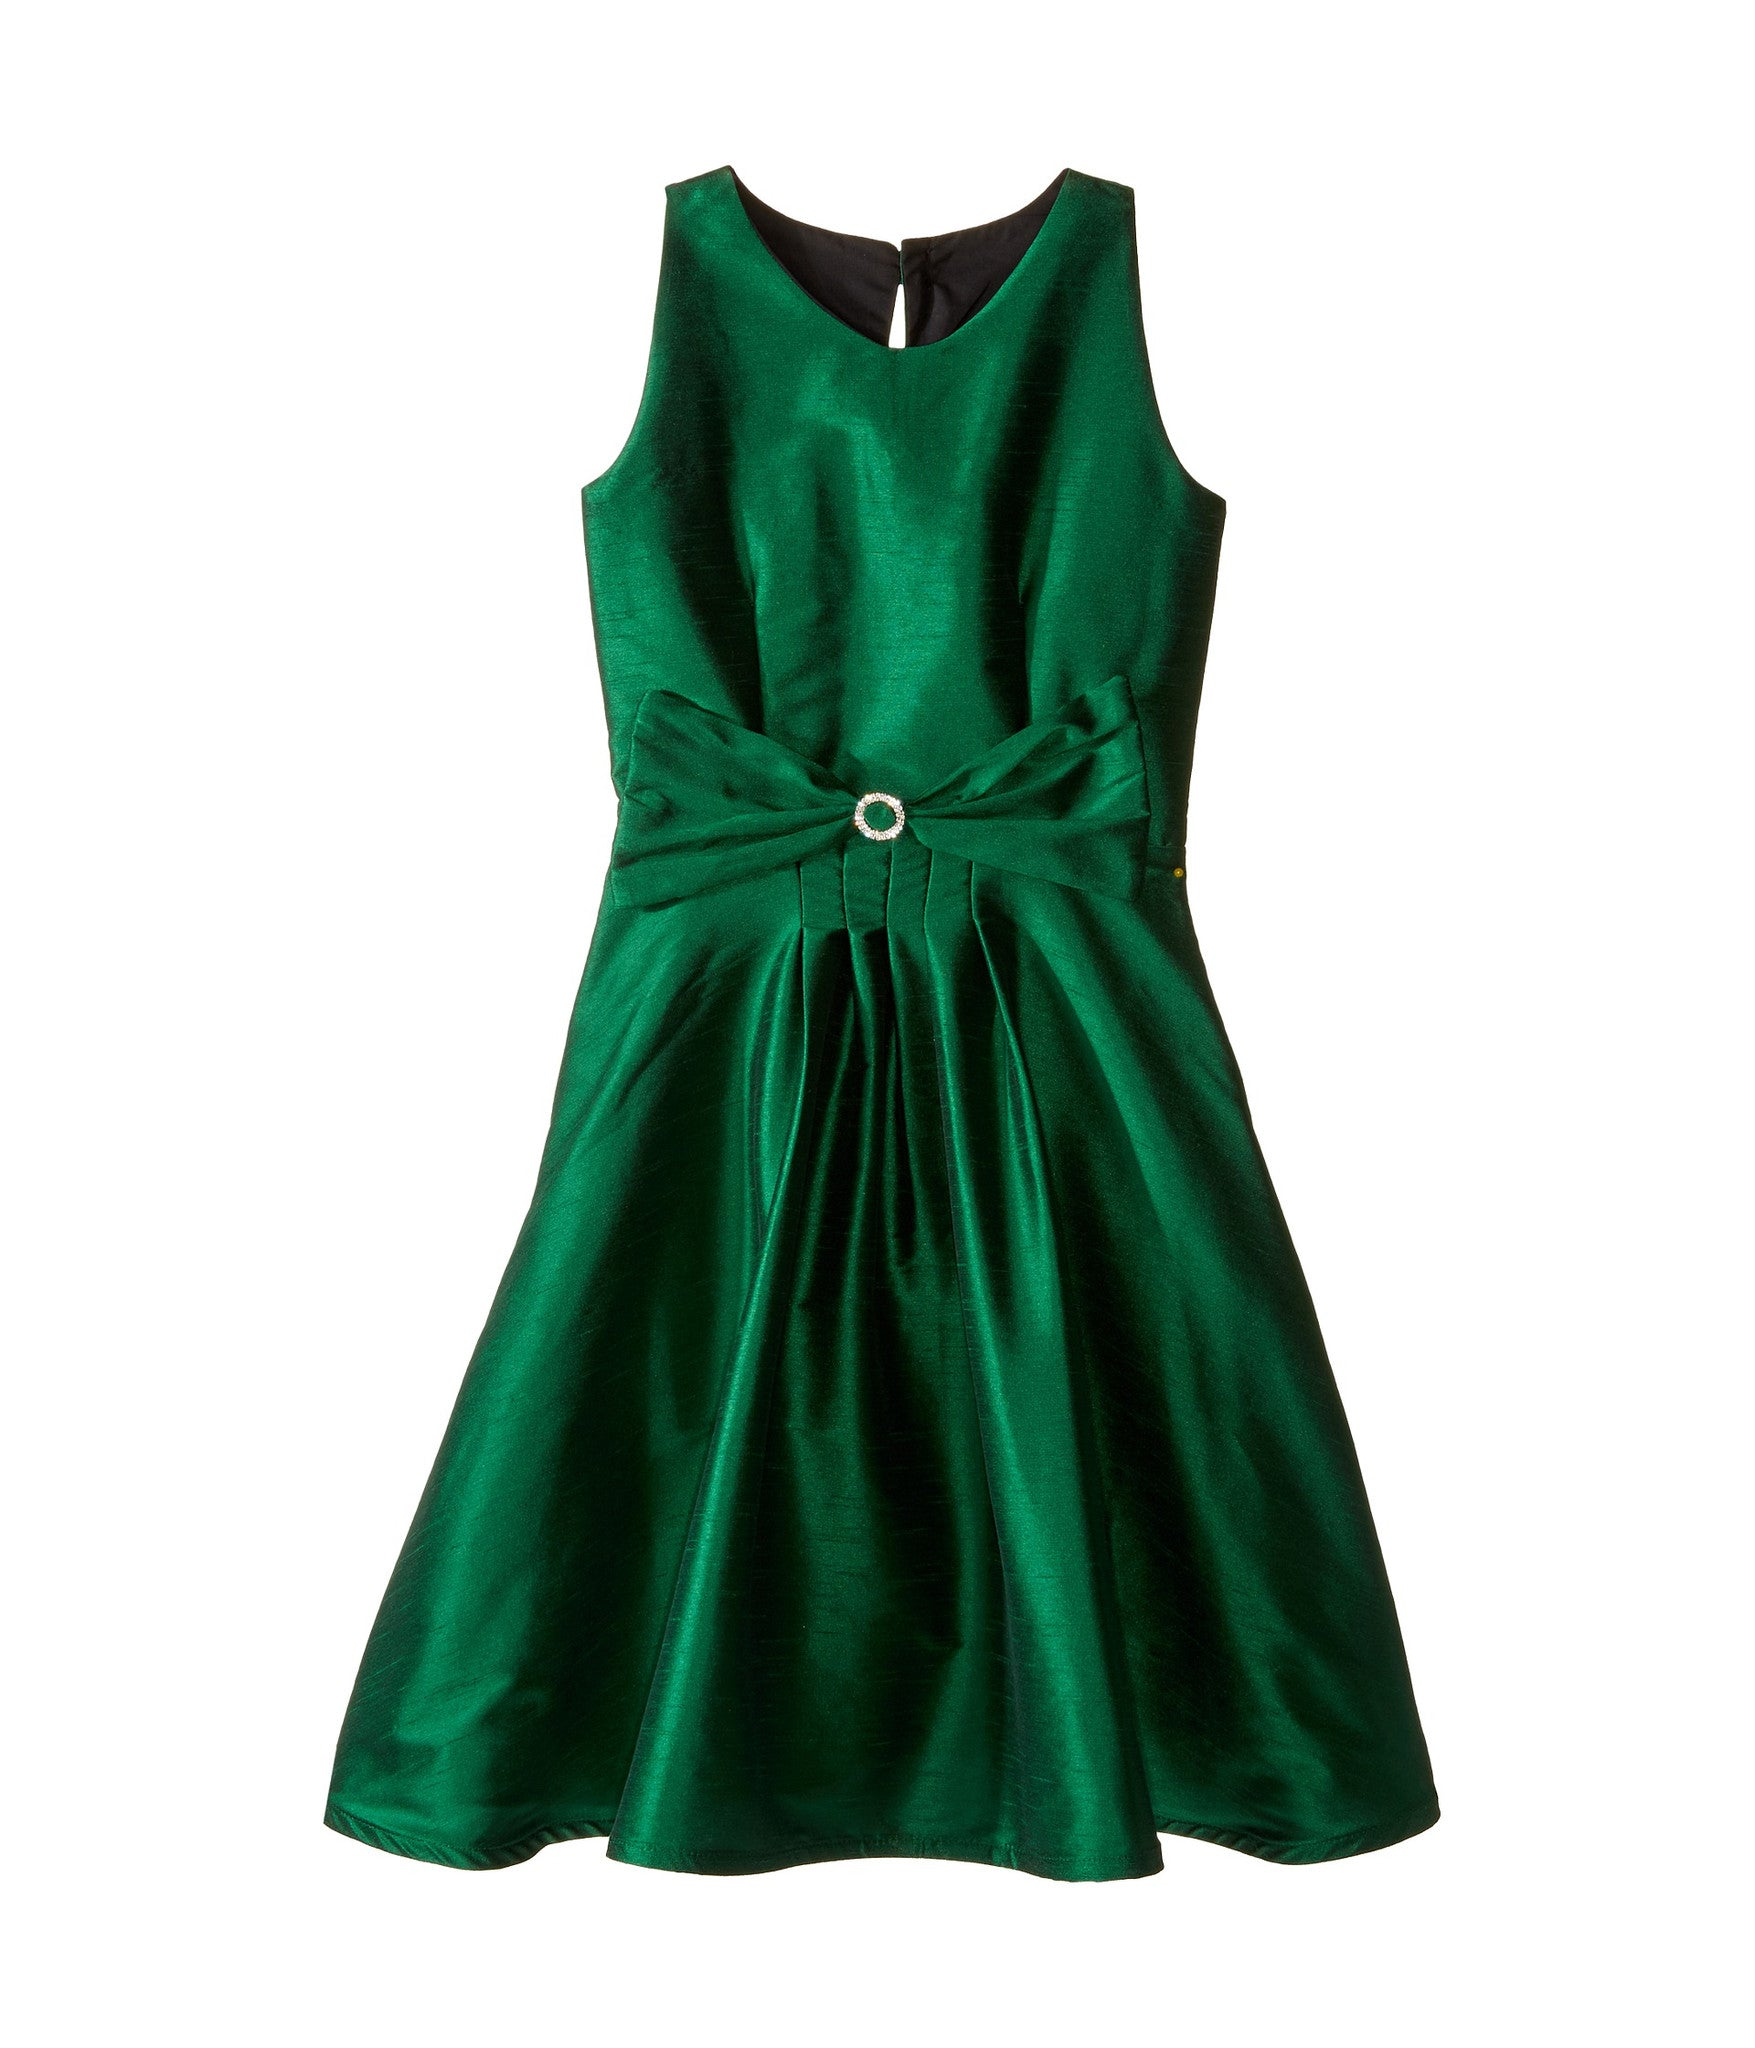 Holiday Green Dress